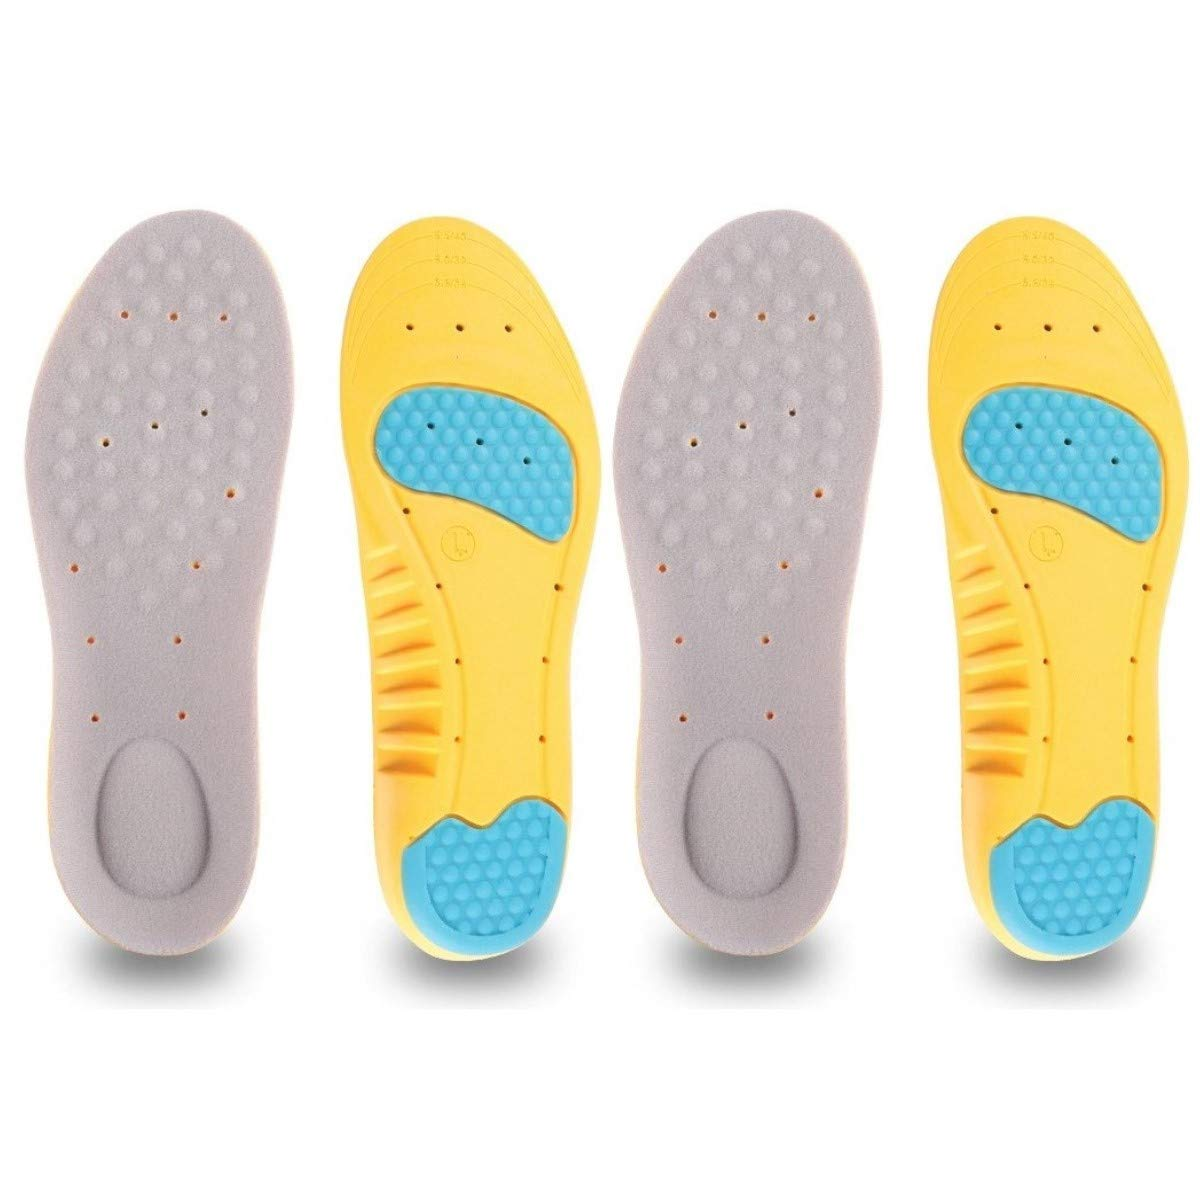 2 Pairs Shoe Insoles, Orthotic Insoles, Memory Foam Insoles Providing Excellent Shock Absorption and Cushioning, Best Insoles for Men and Women for Everyday Use